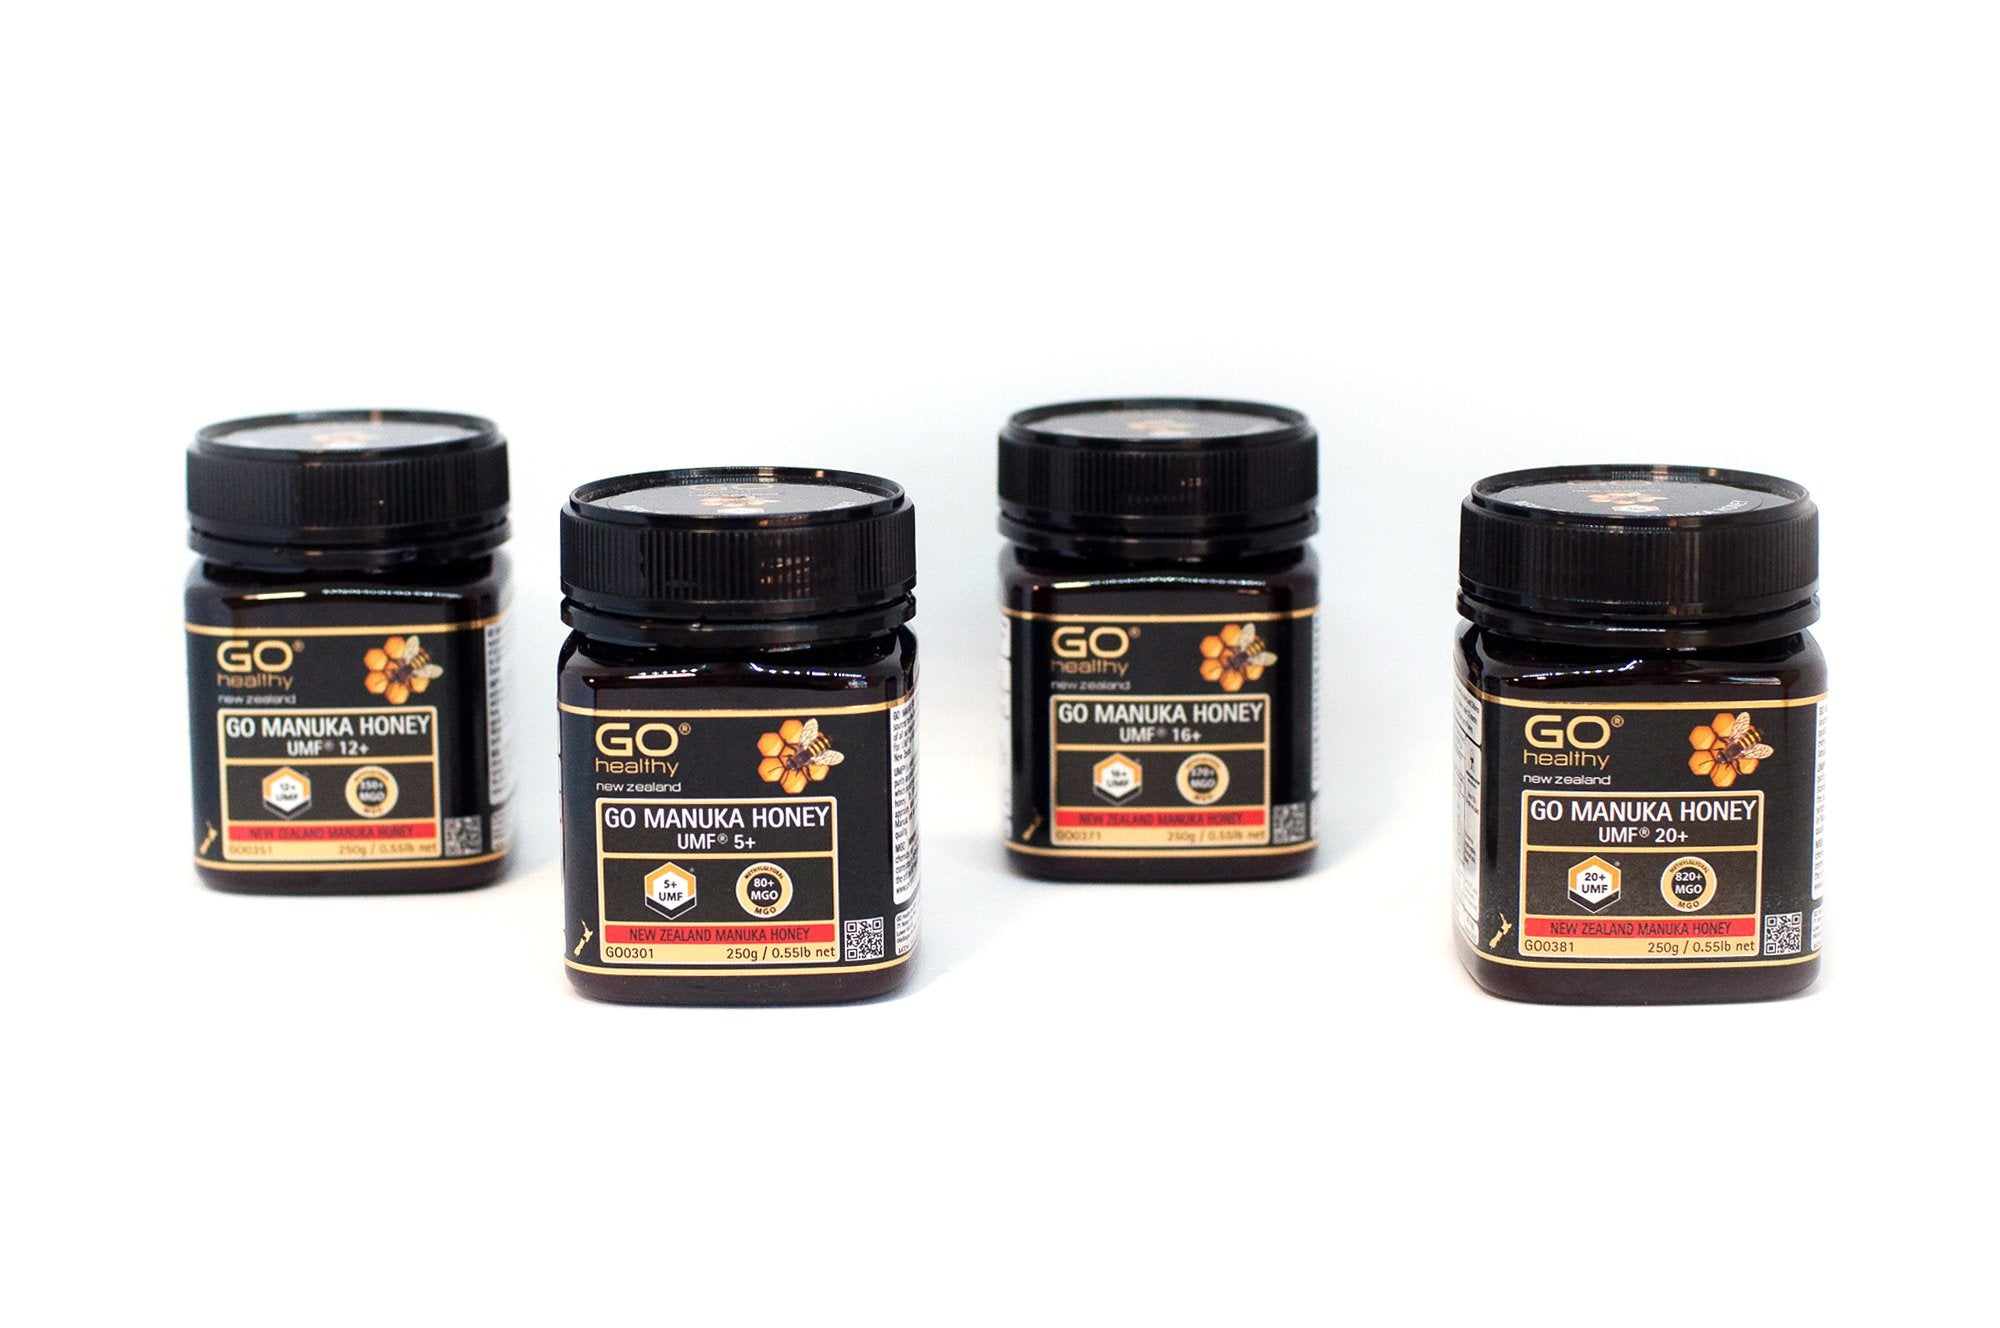 5+ UMF (80+ MGO) Go Manuka Honey 250g